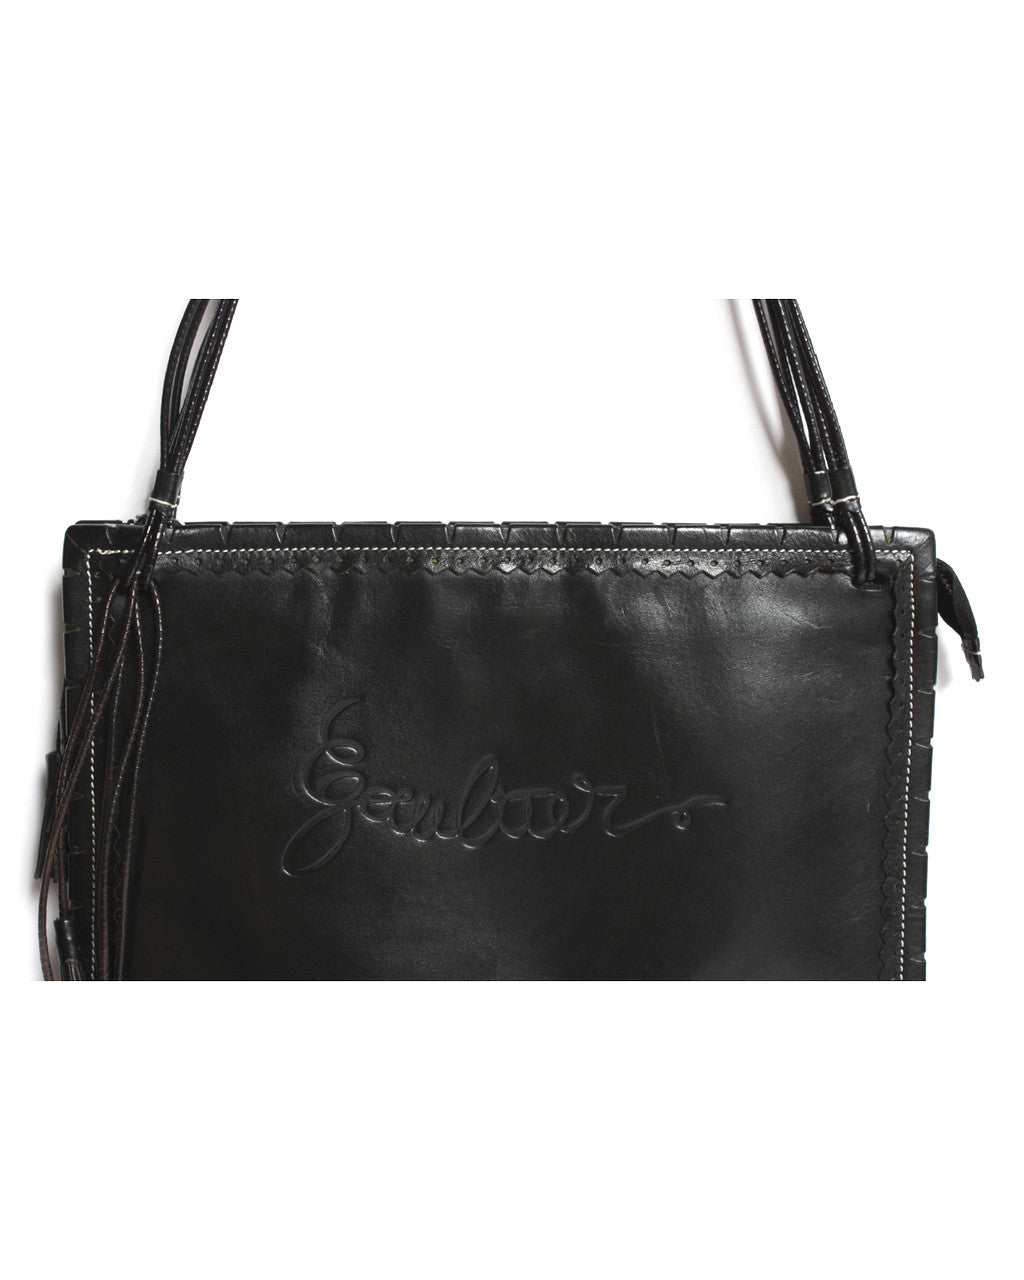 Jean Paul Gaultier Black Leather Shoulder Bag With Zig-Zag Stitching - C.Madeleine's